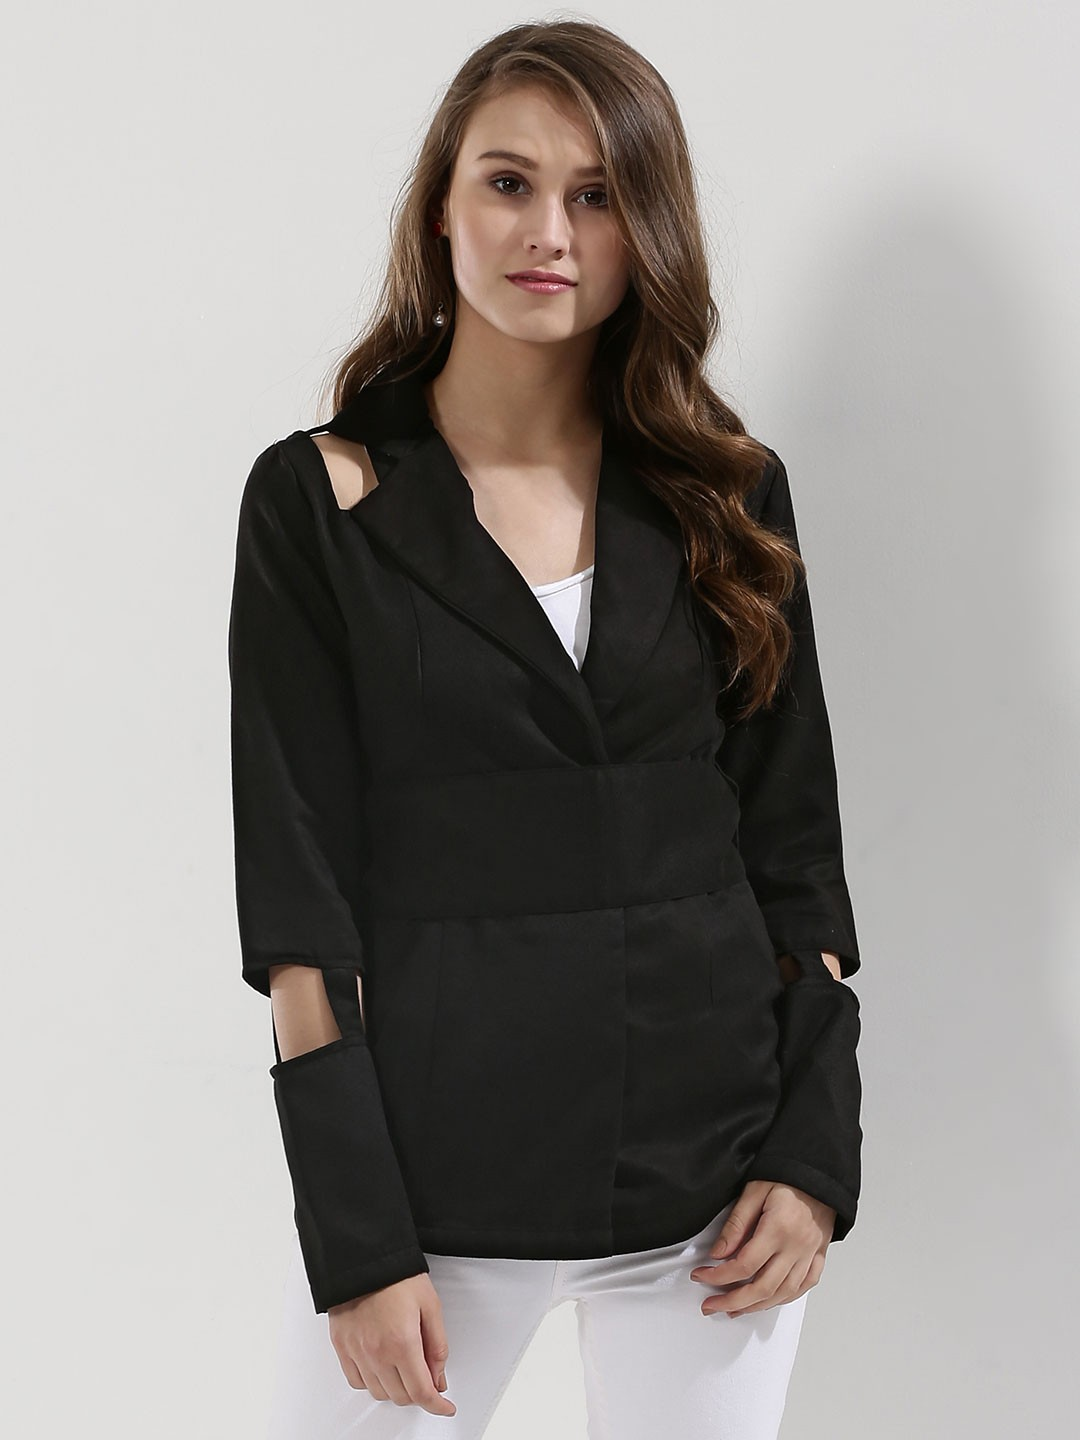 KOOVS Black Cut-out Detail Jacket In The Style Of Jessica Alba 1